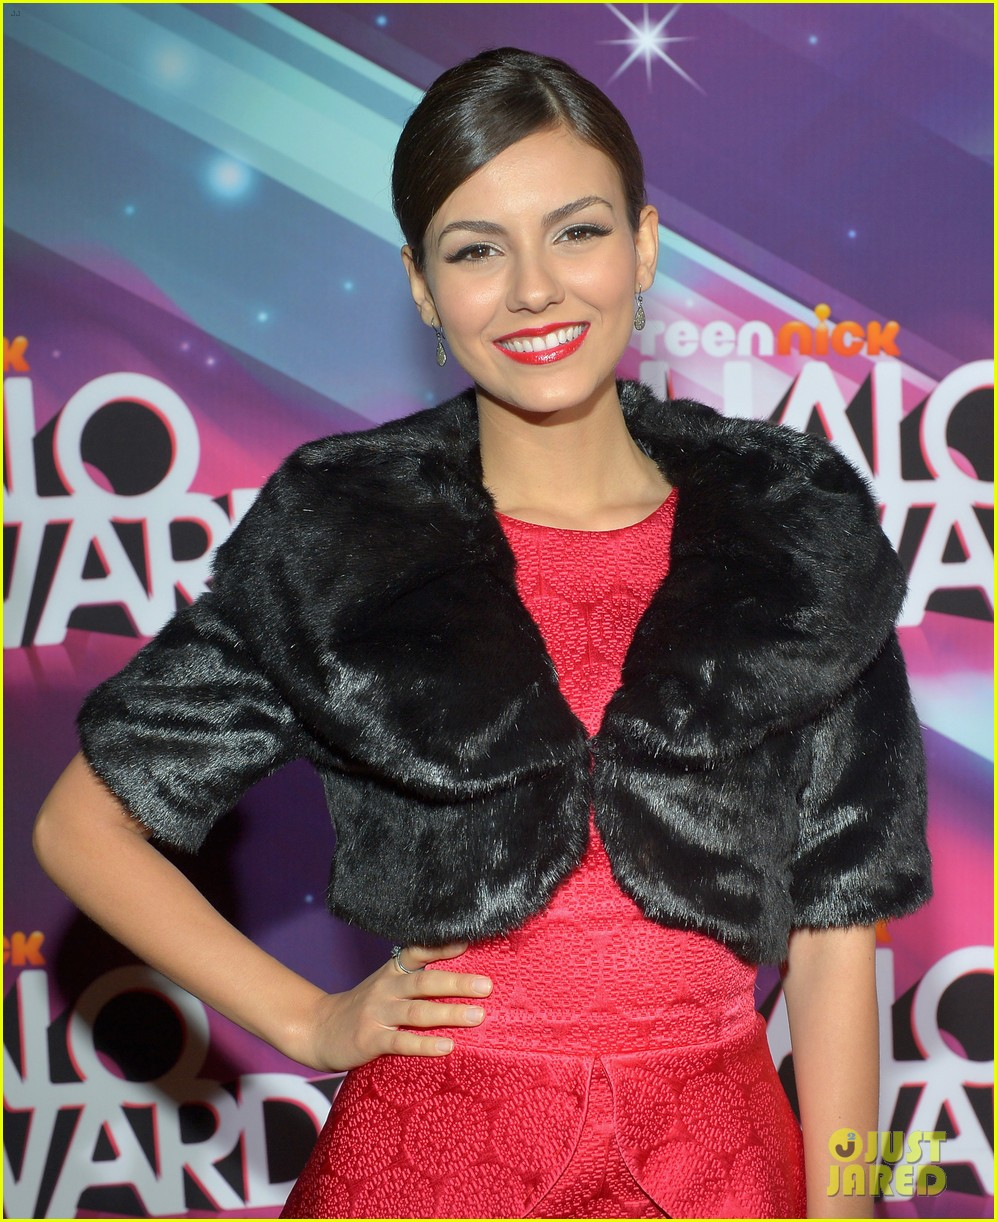 lucy hale victoria justice teennick halo awards 2012 19